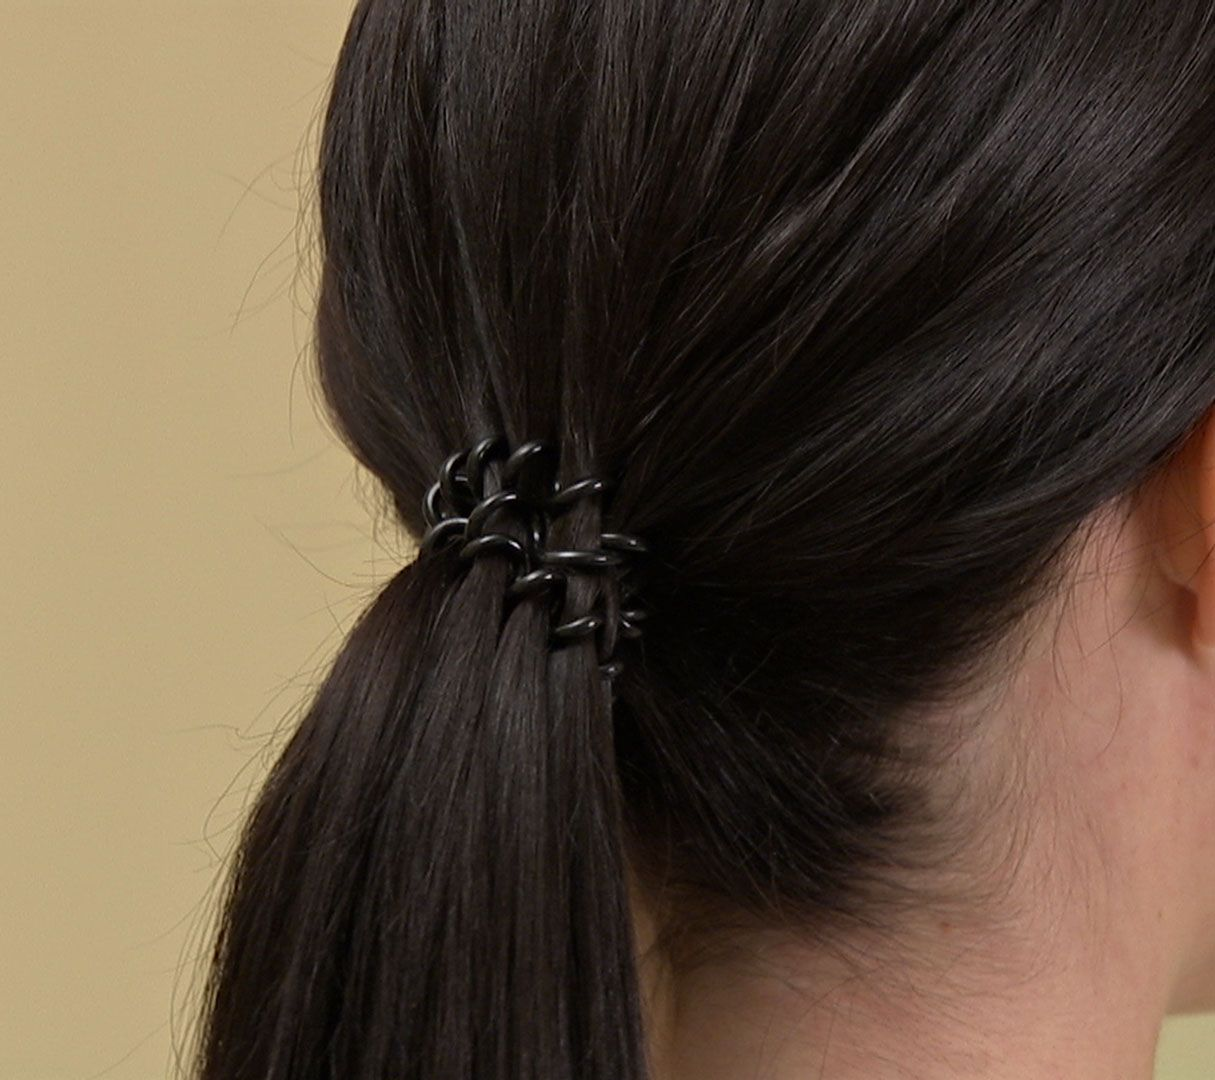 Set of 30 Traceless Spiral Hair Ties by Lori Greiner - Page 1 — QVC.com 9242b5266c5